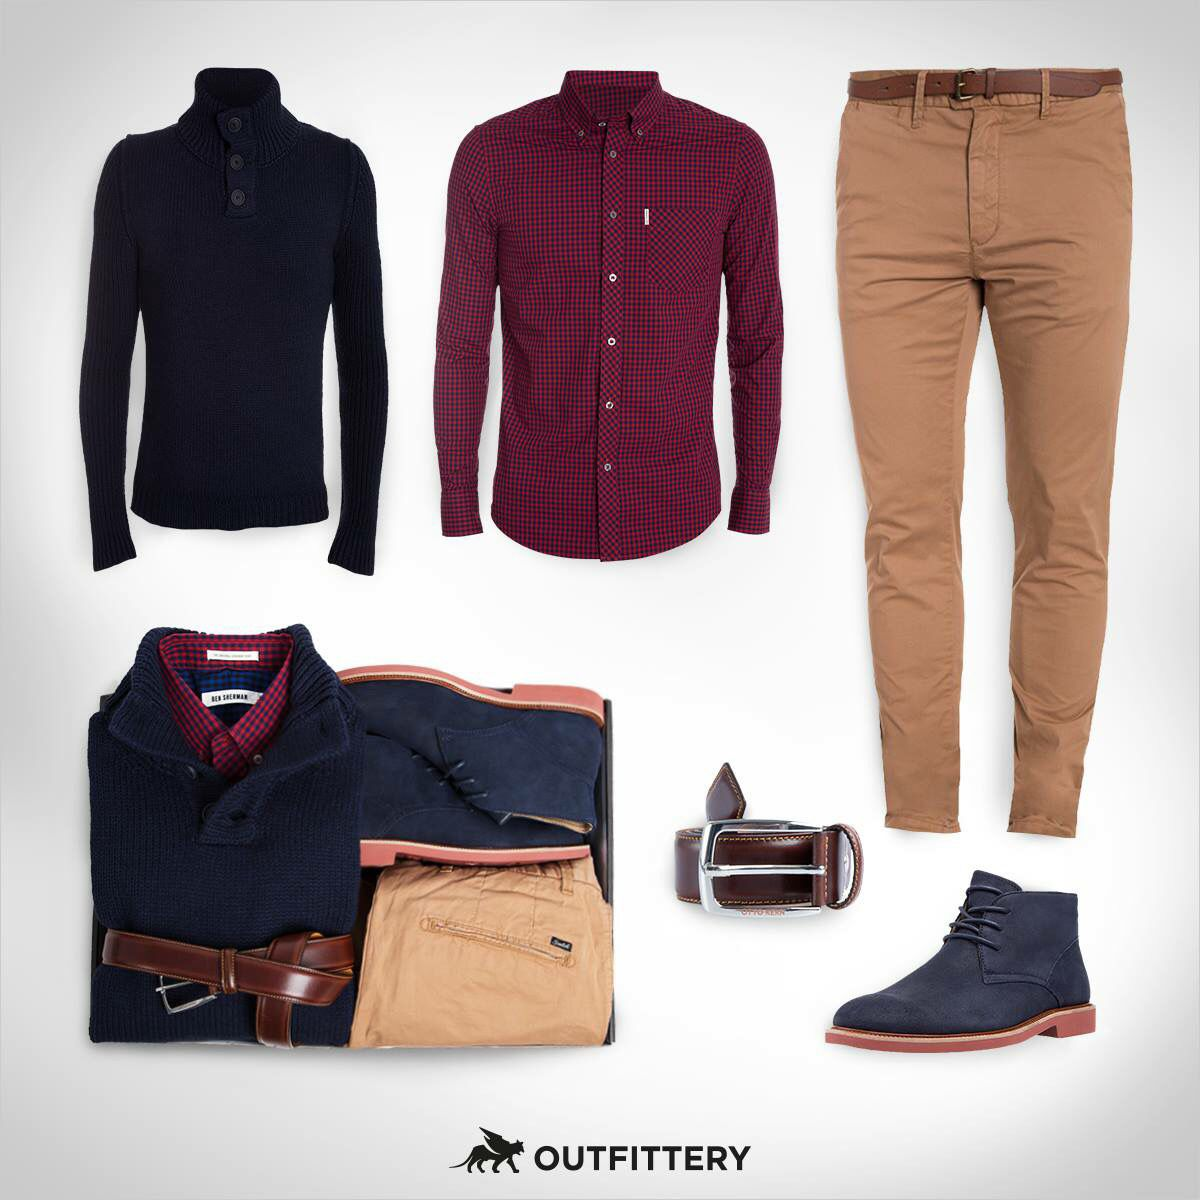 Outfittery Adidas Schuhe Outfittery Schuhe Outfittery Adidas